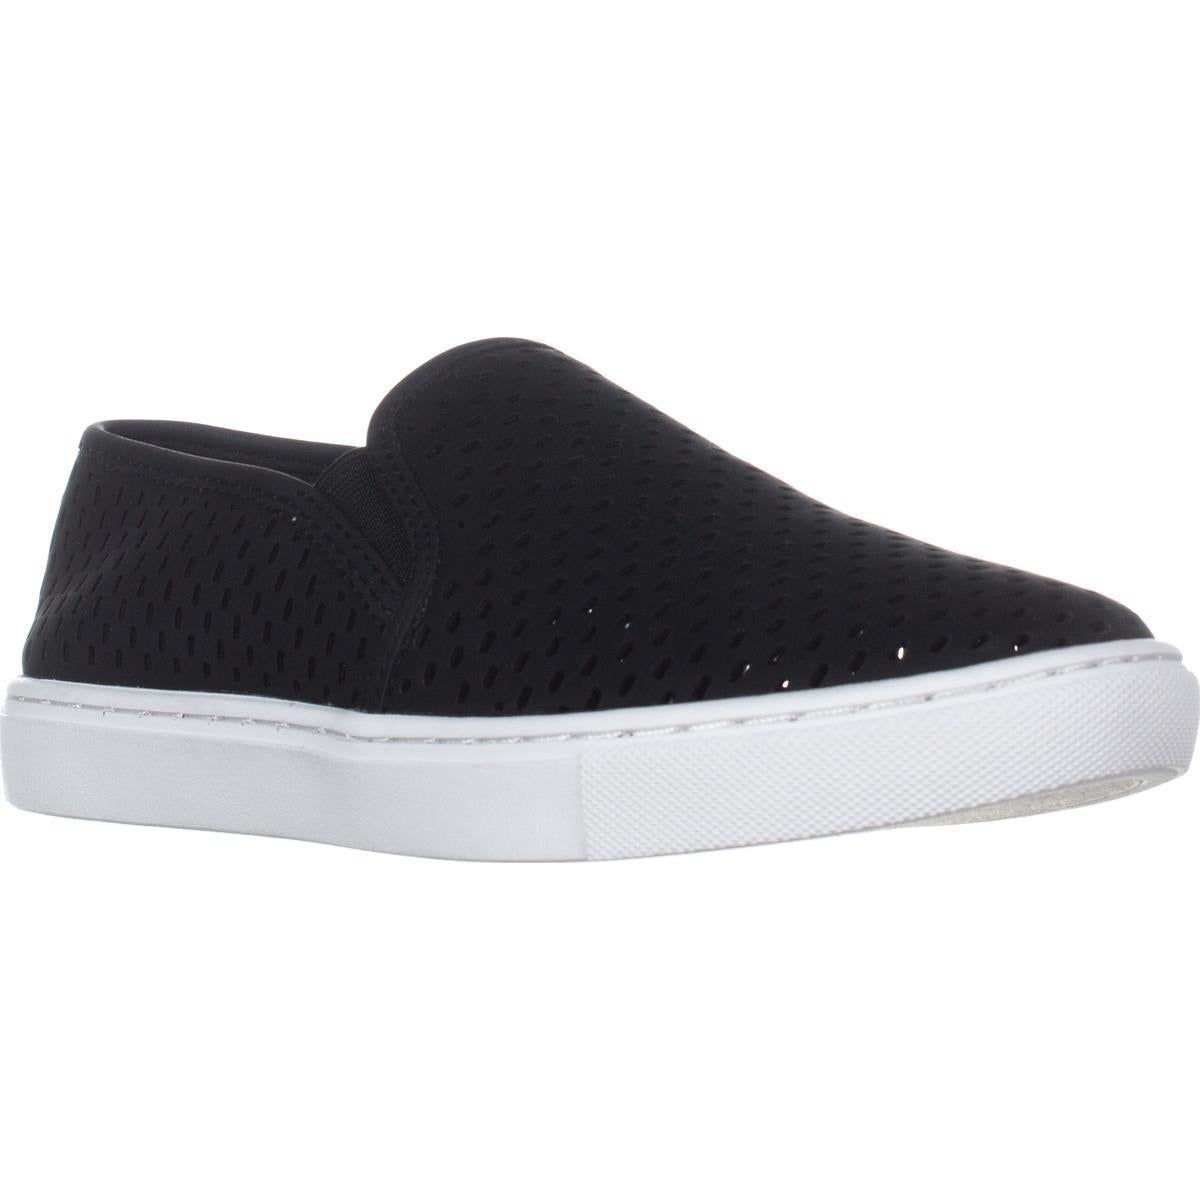 107010ed1f3 Shop Steve Madden Elouise Slip-On Fashion Sneakers